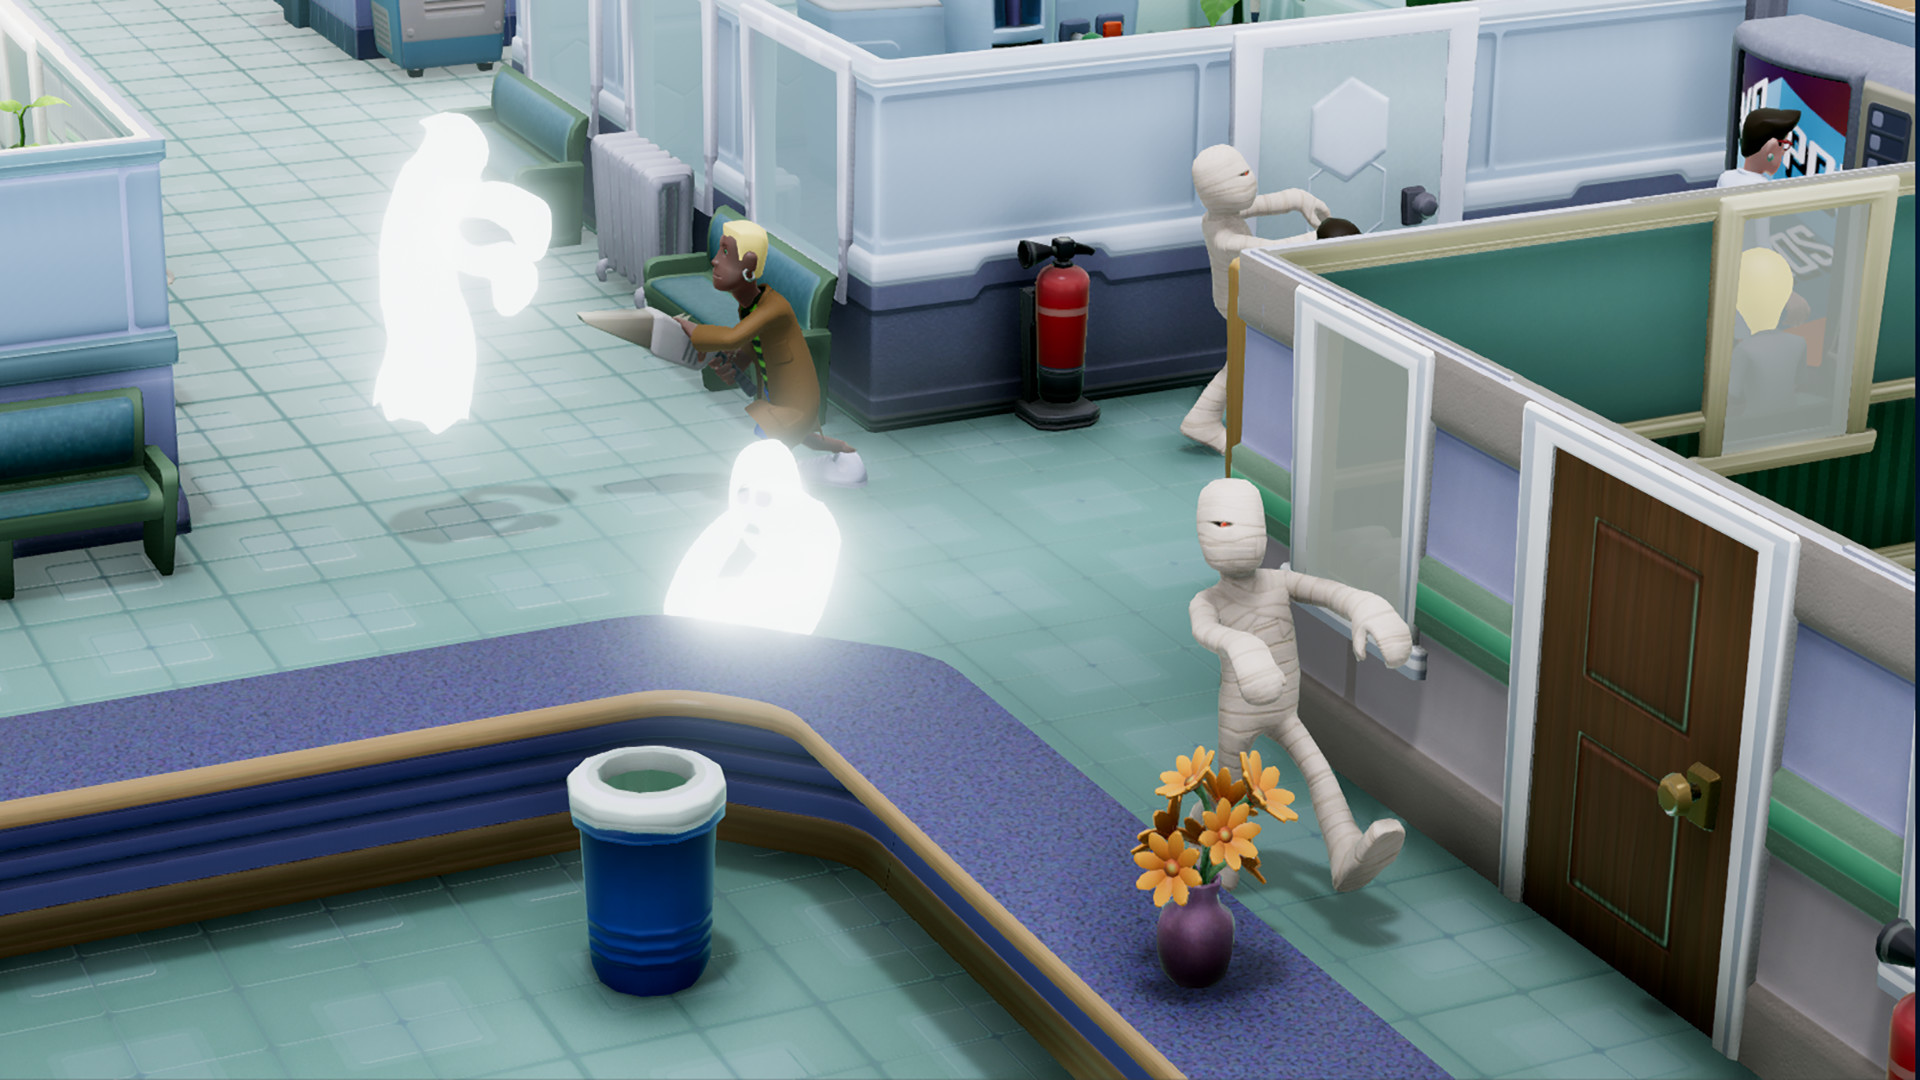 Two Point Hospital opens its doors today